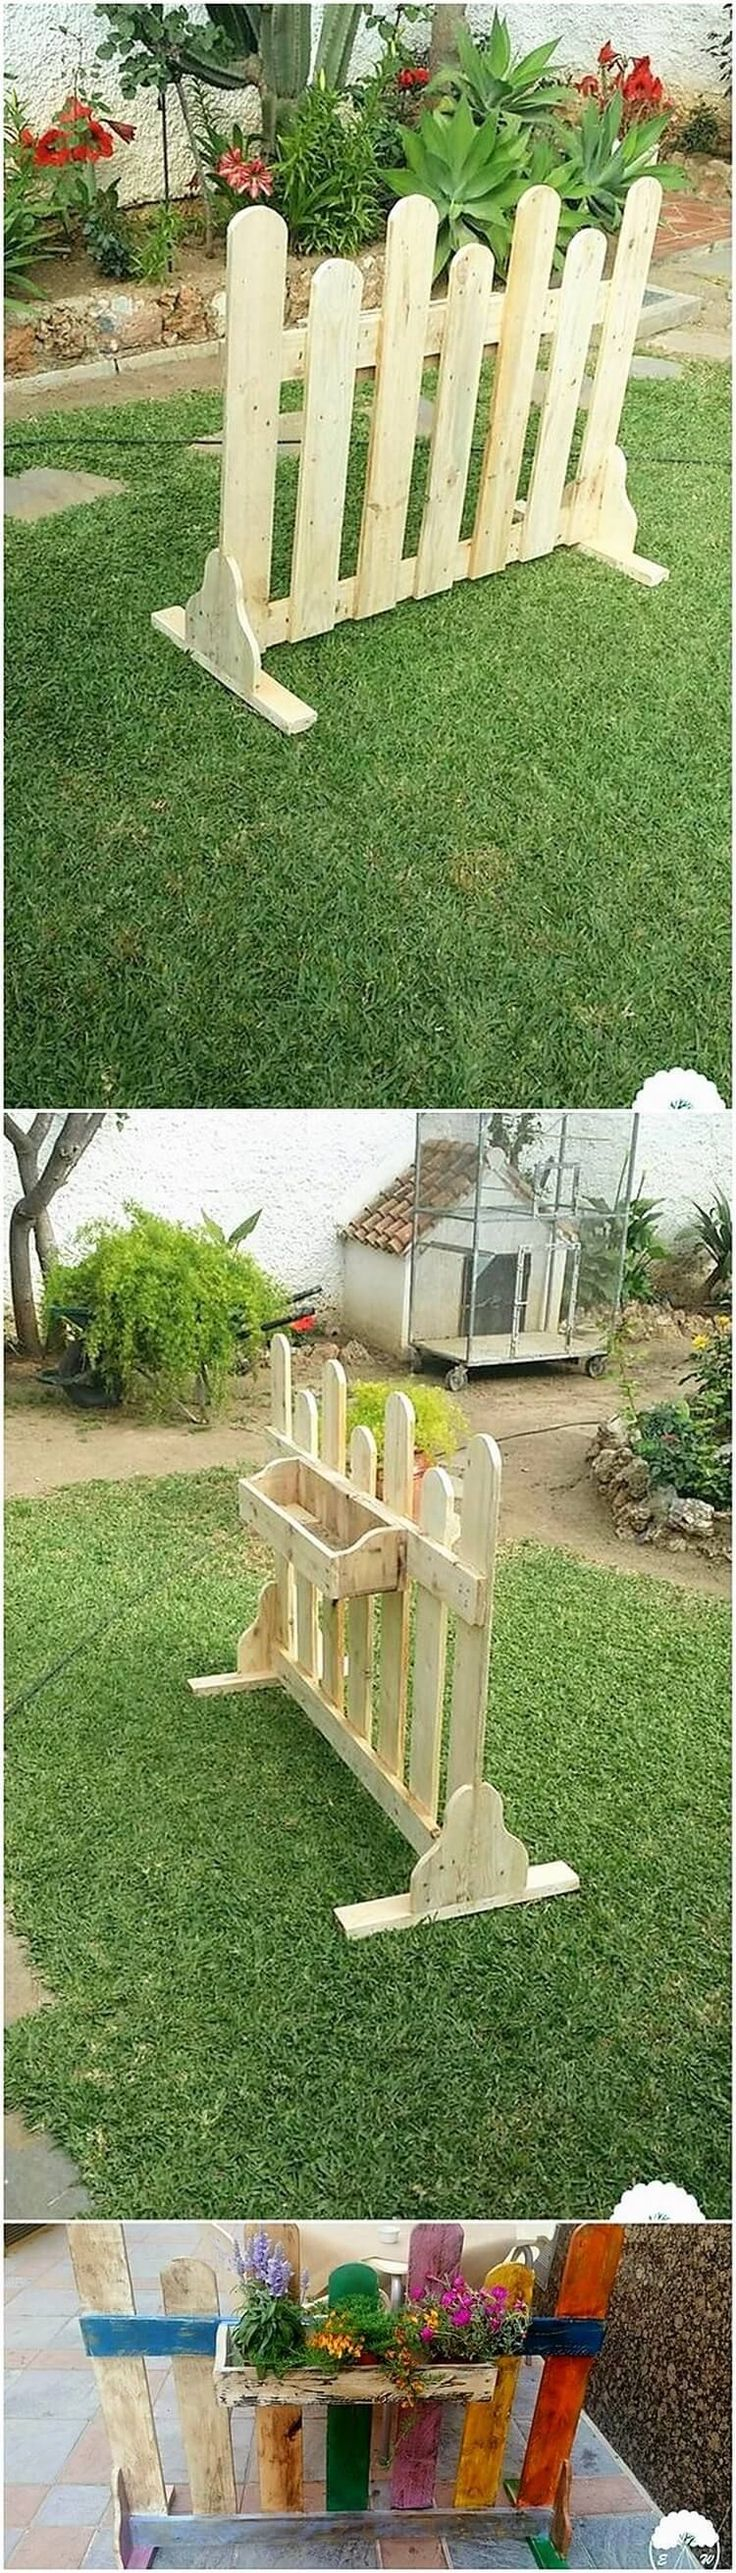 Yet a small but quite an inspiring looking garden fence with planter design has been put forward in this image as manufactured with wood pallet use. It is miniature in sizing so you can probably make it place in any corner of the garden. It would look catchier by making it add with floral effect piece. #Palletgardenprojects